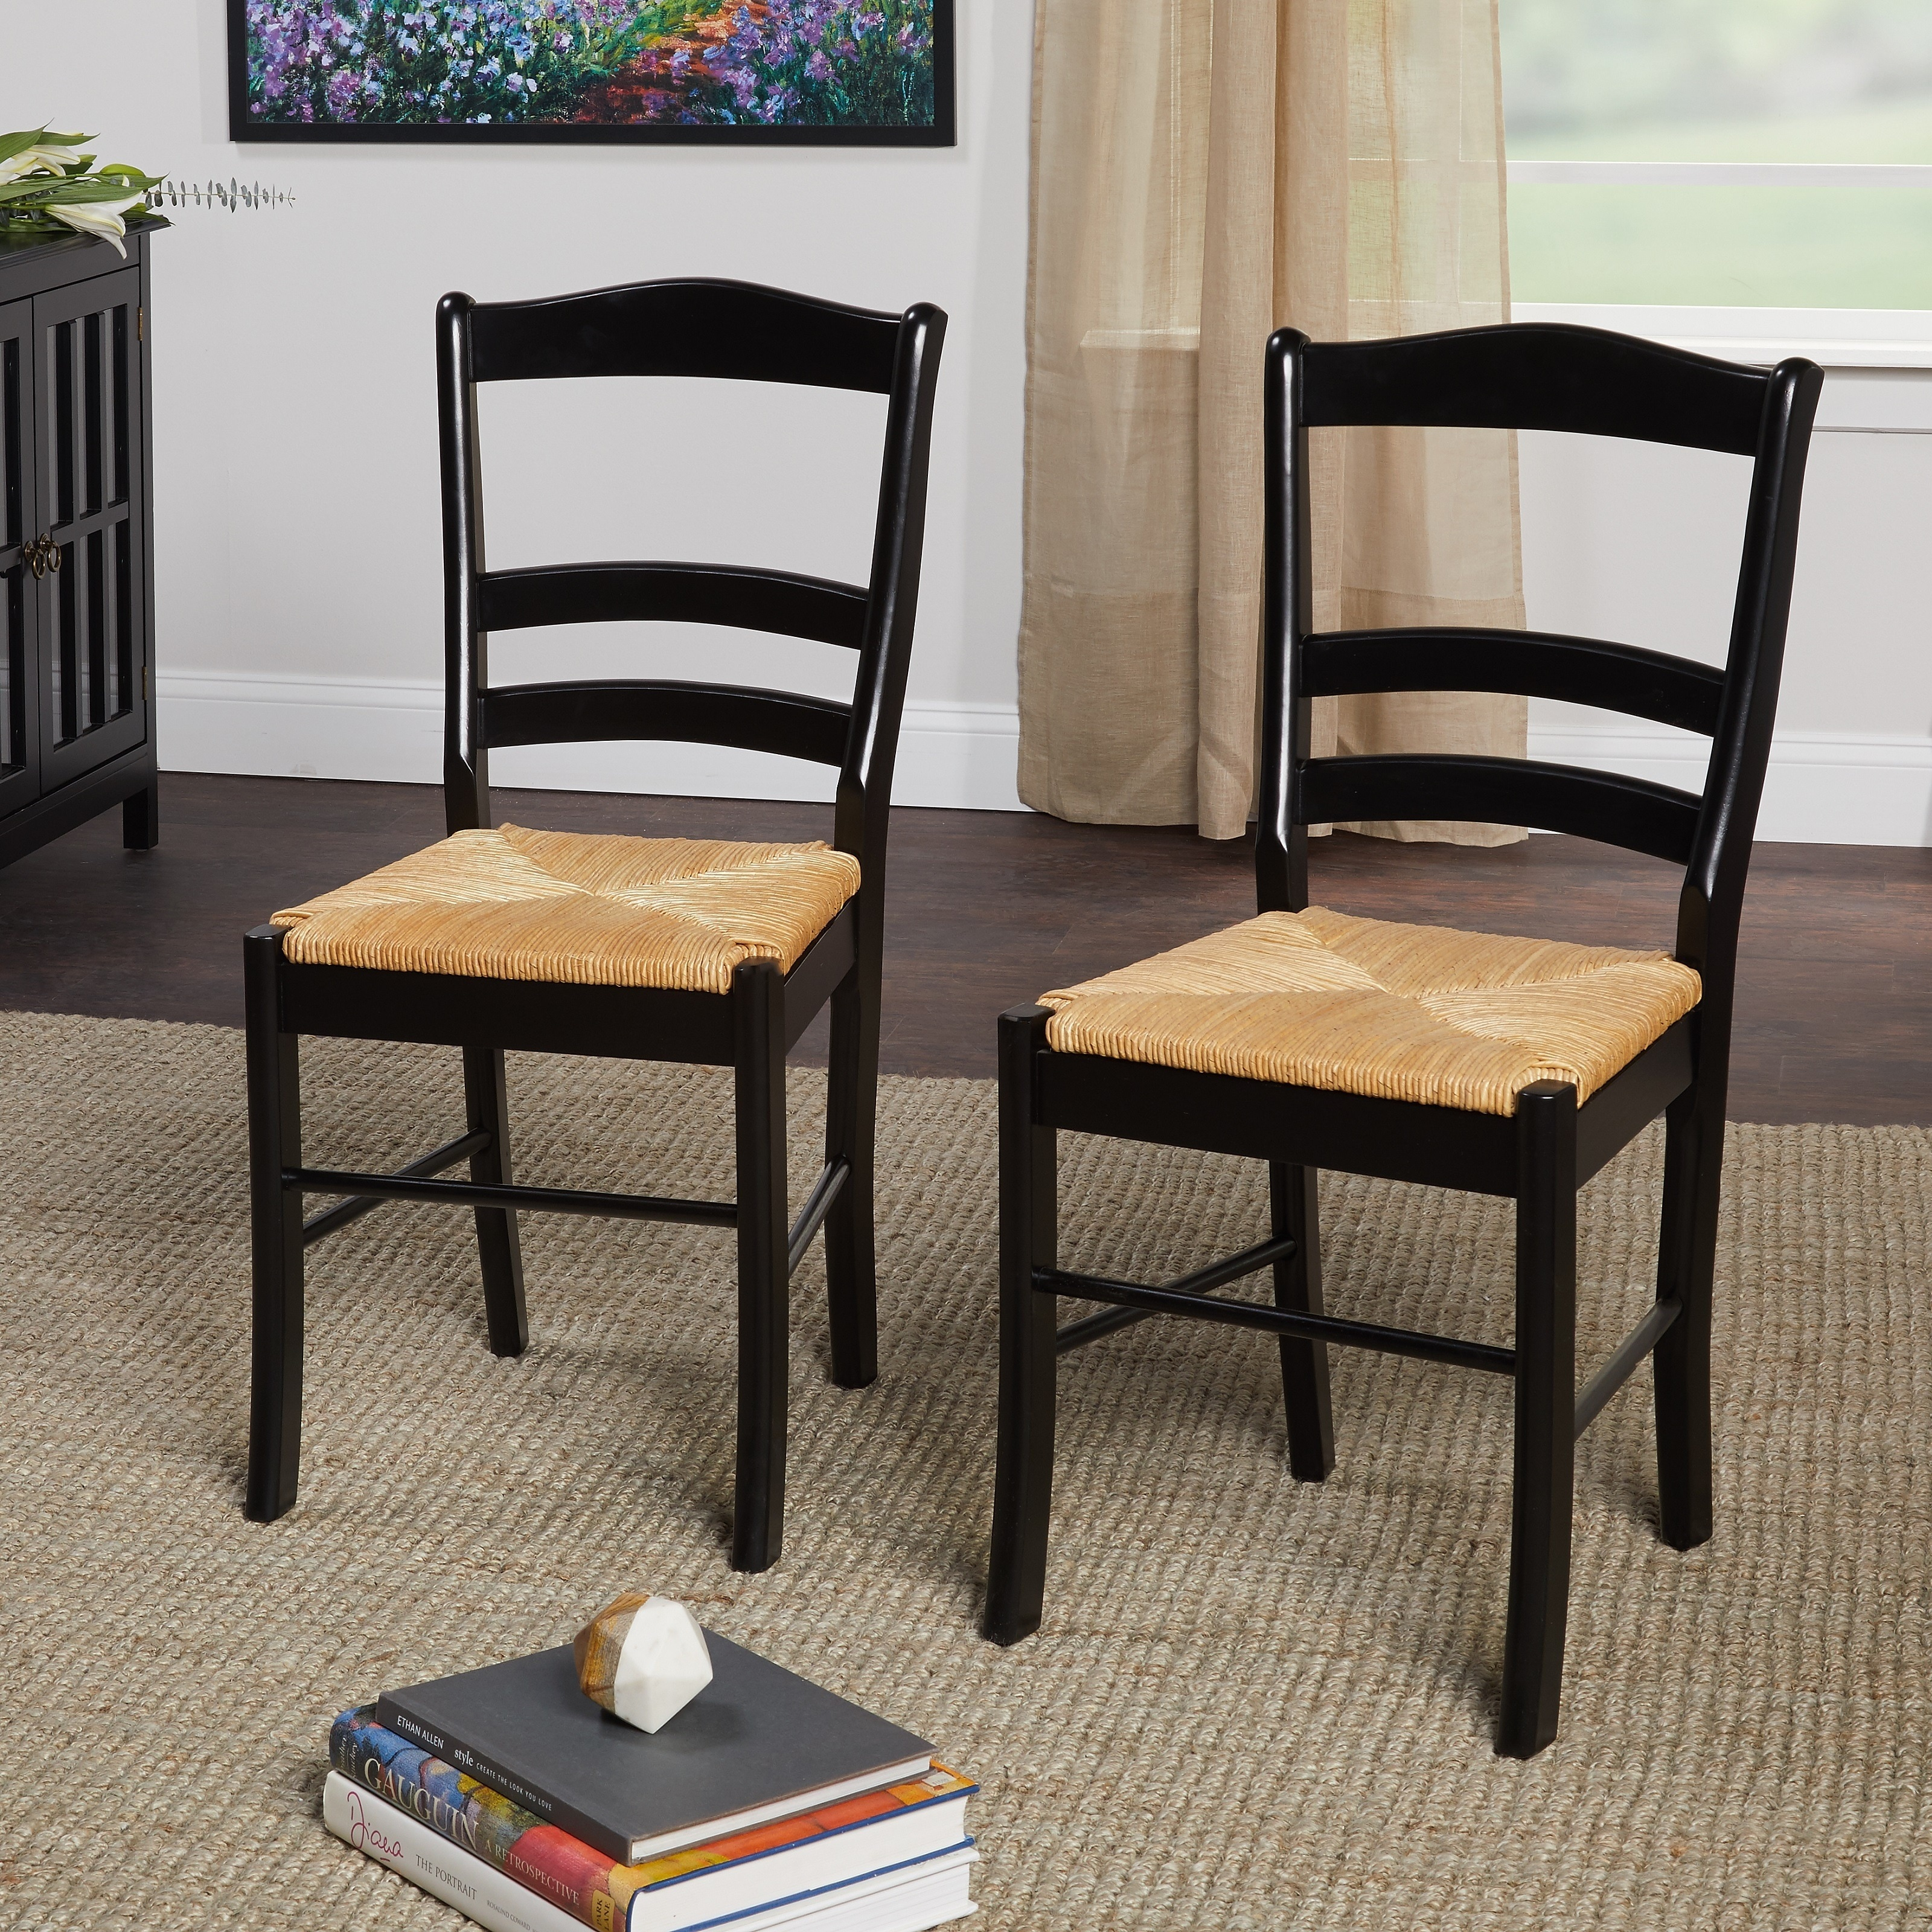 1d4f781f5 Shop Simple Living Paloma Wooden Dining Chairs (Set of 2) - On Sale - Free  Shipping Today - Overstock - 4247896